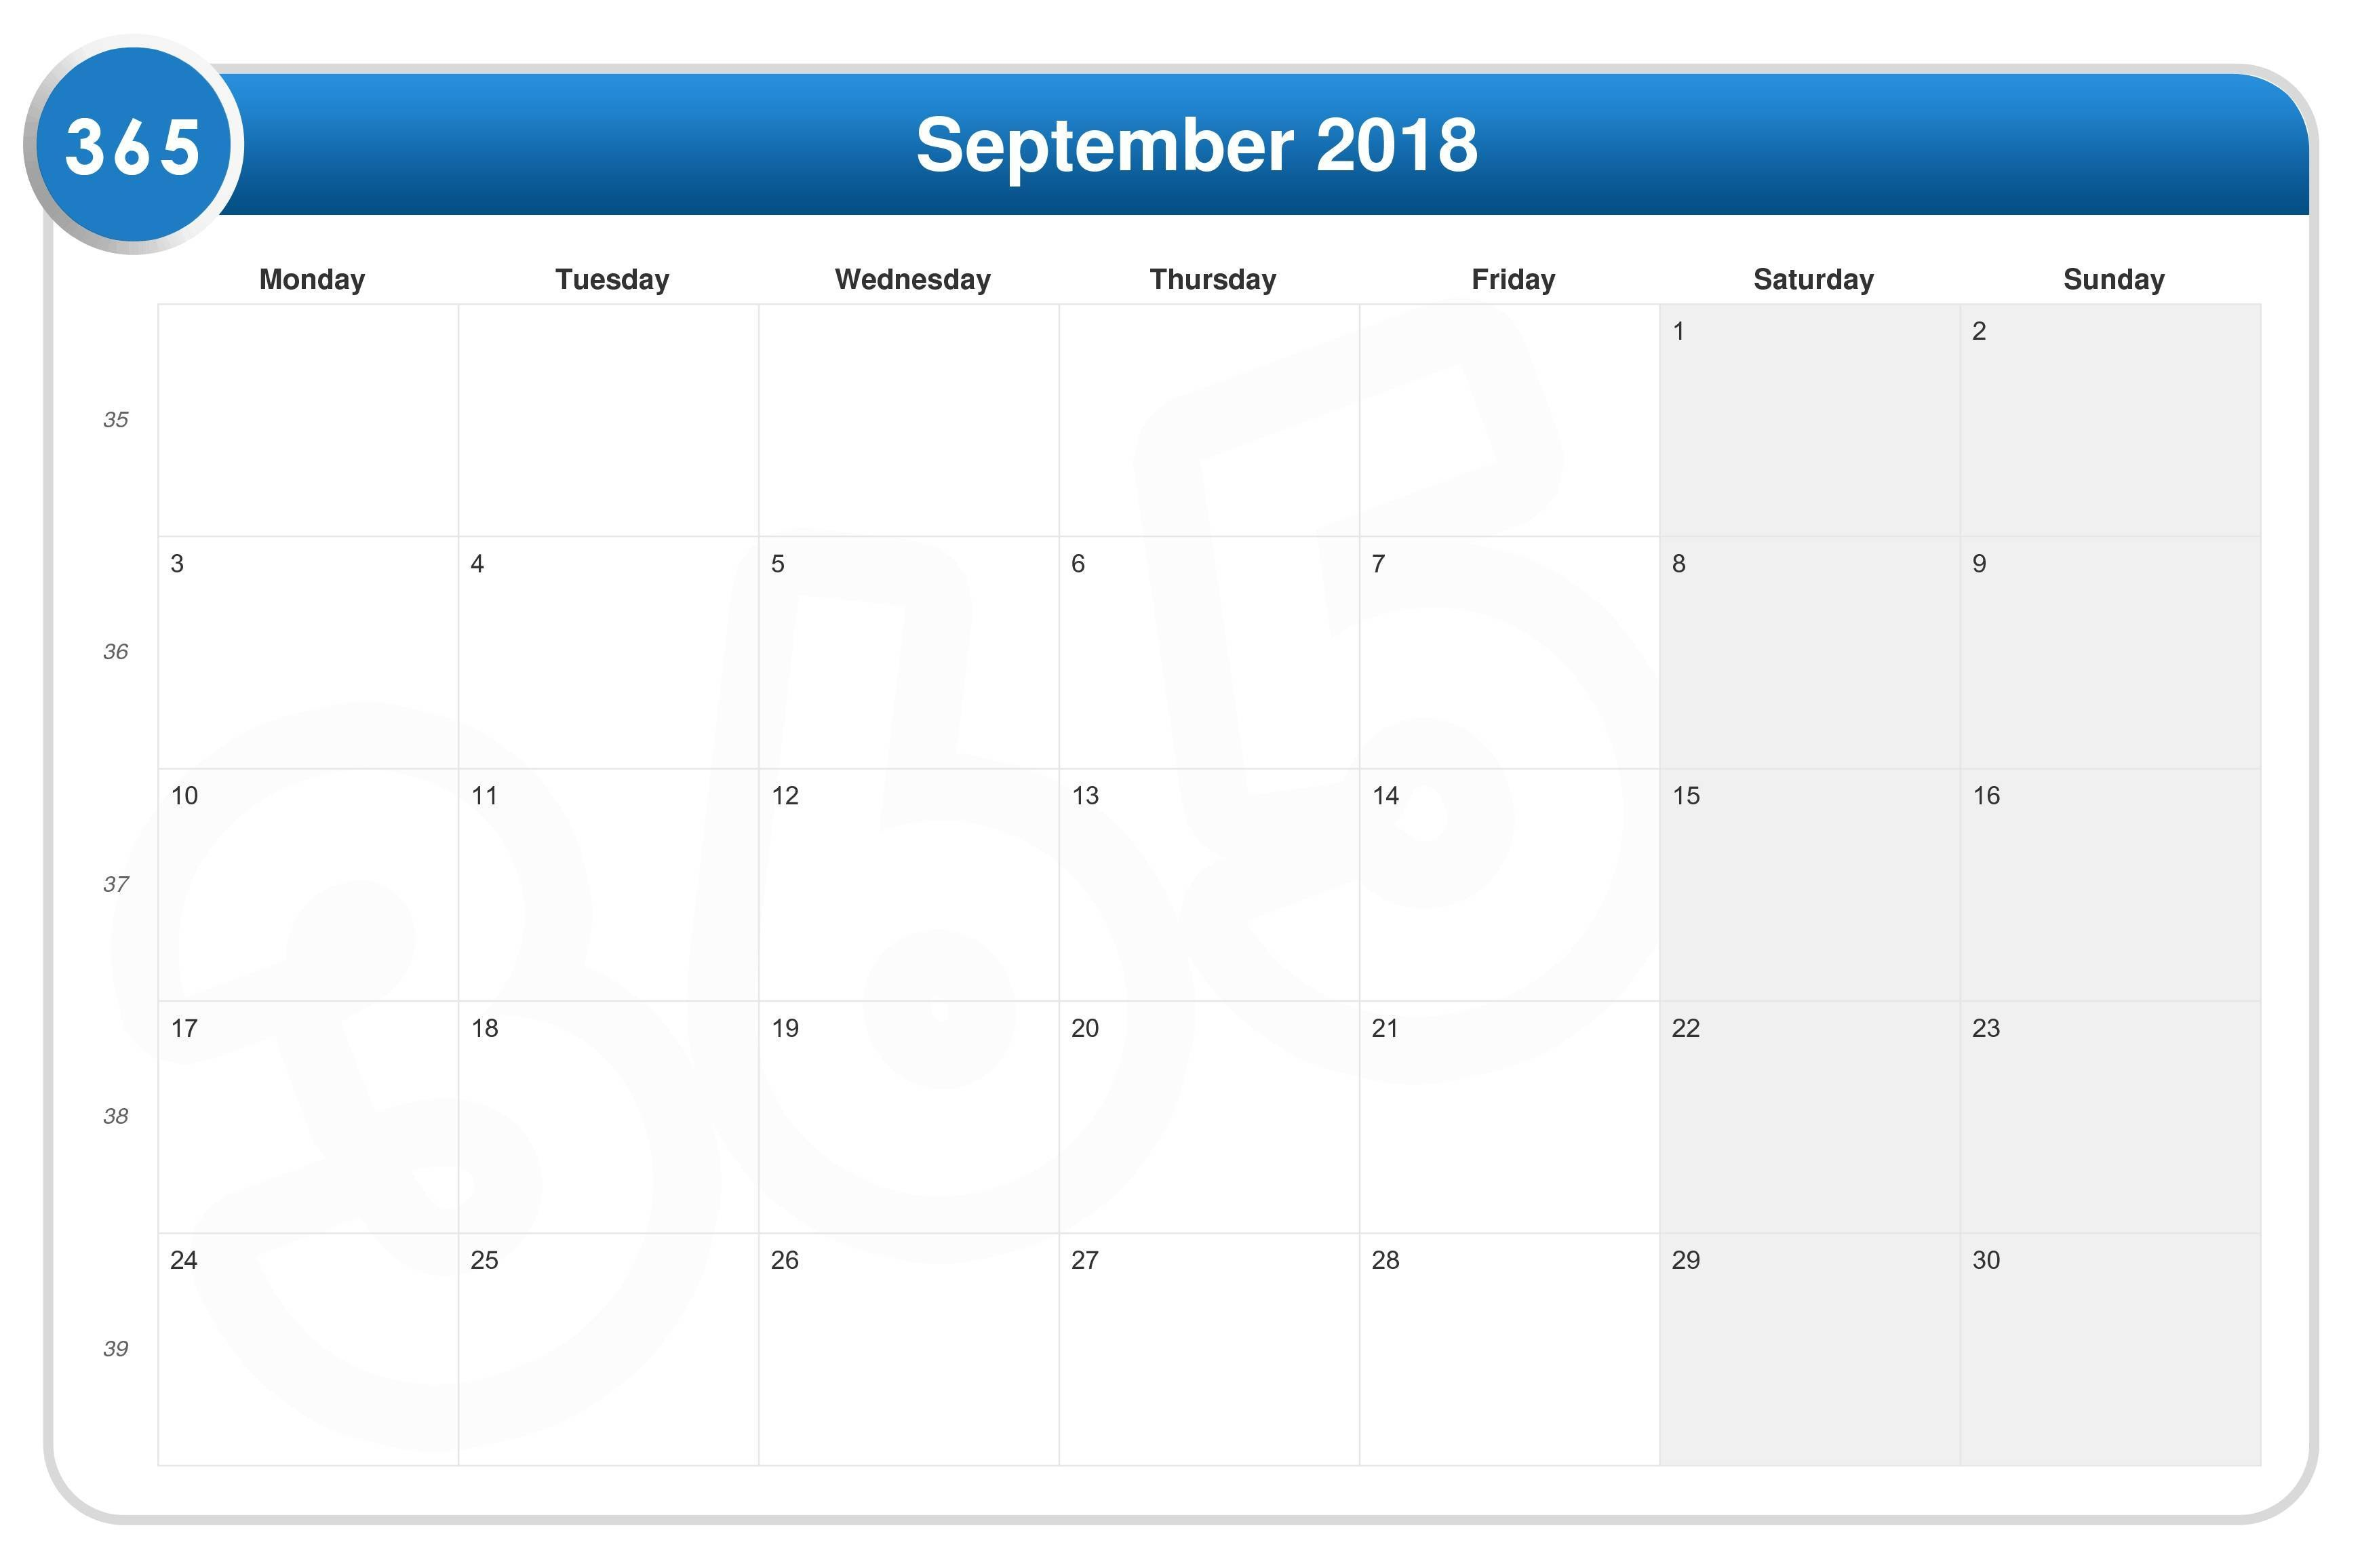 September 2018 Moon Calendar Cycle